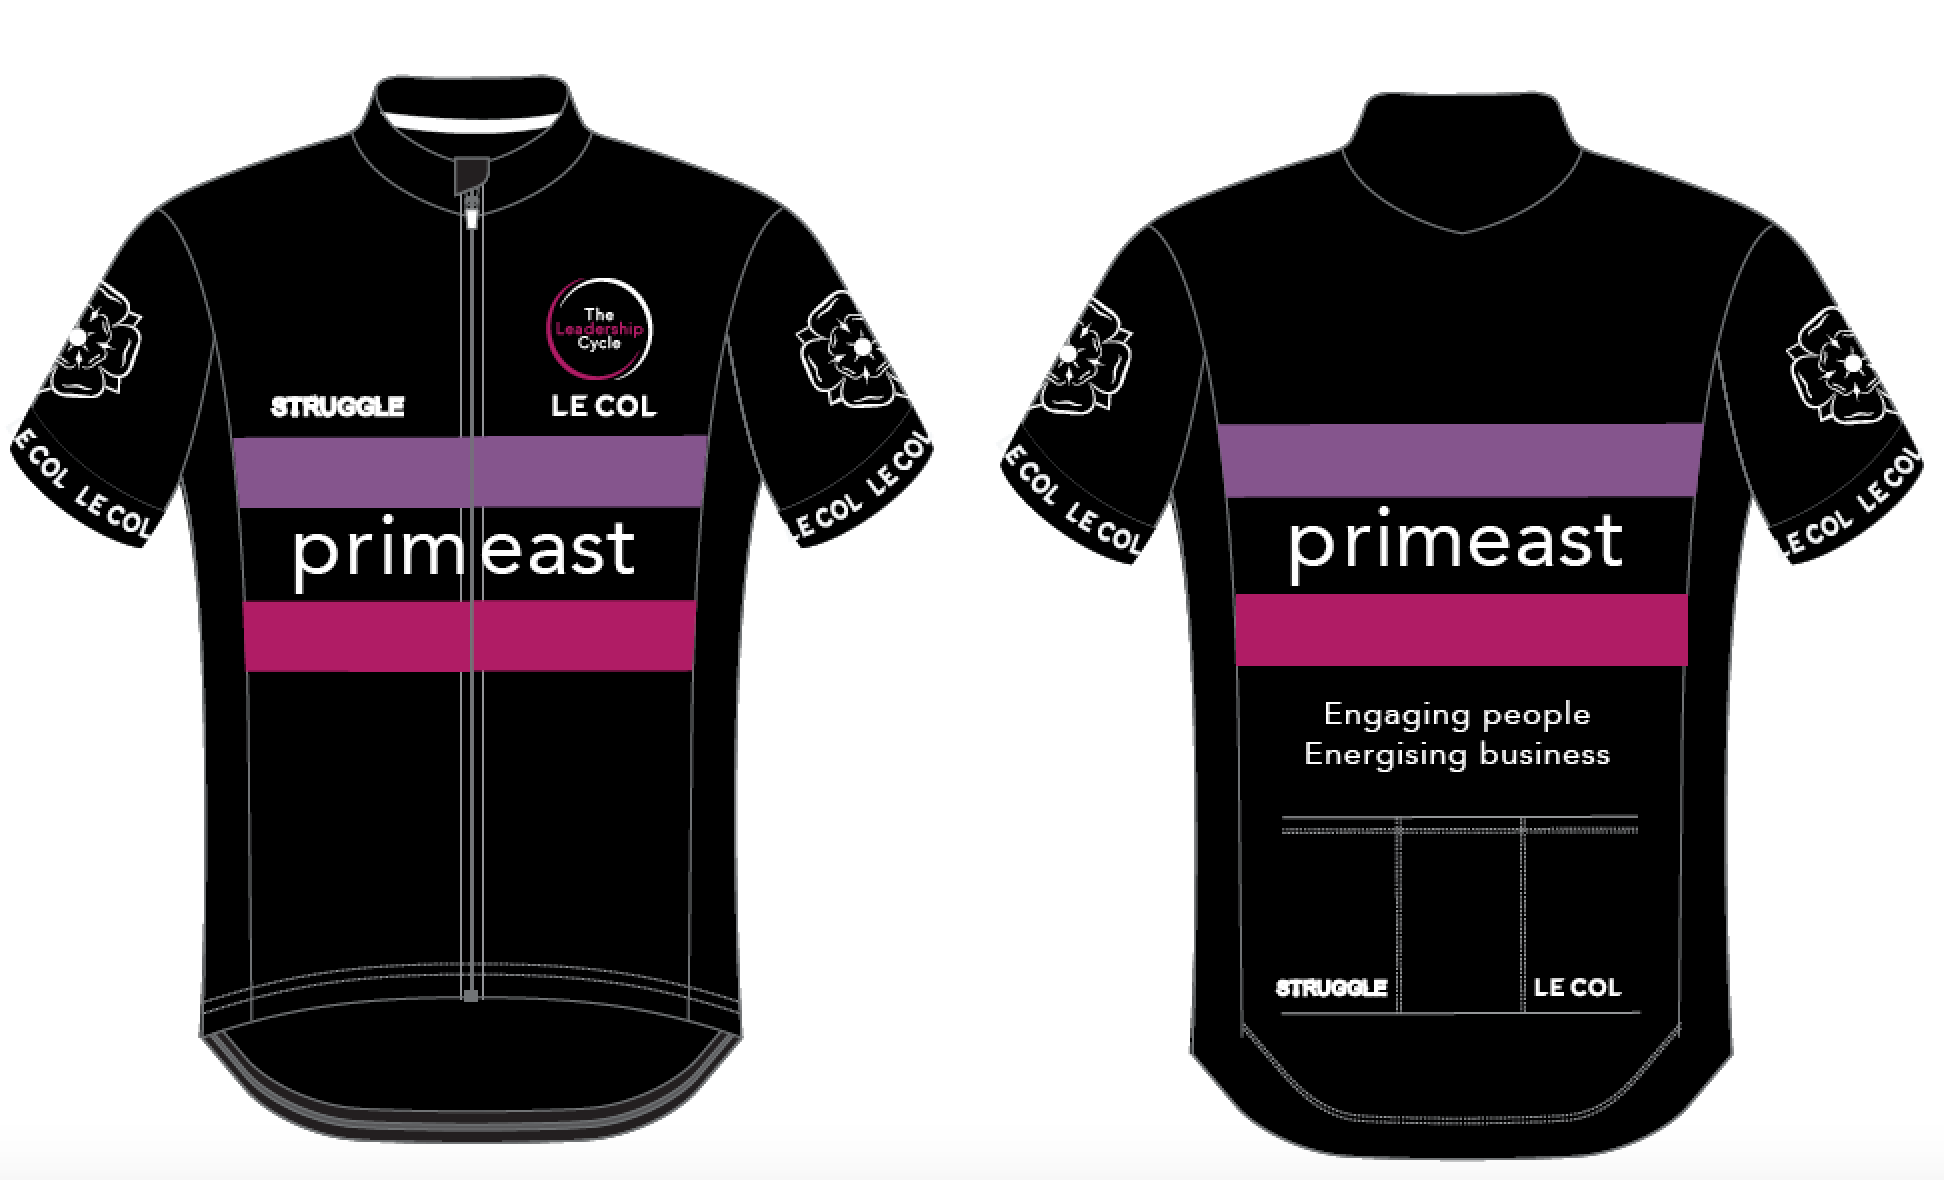 Le Col custom corporate cycling jersey